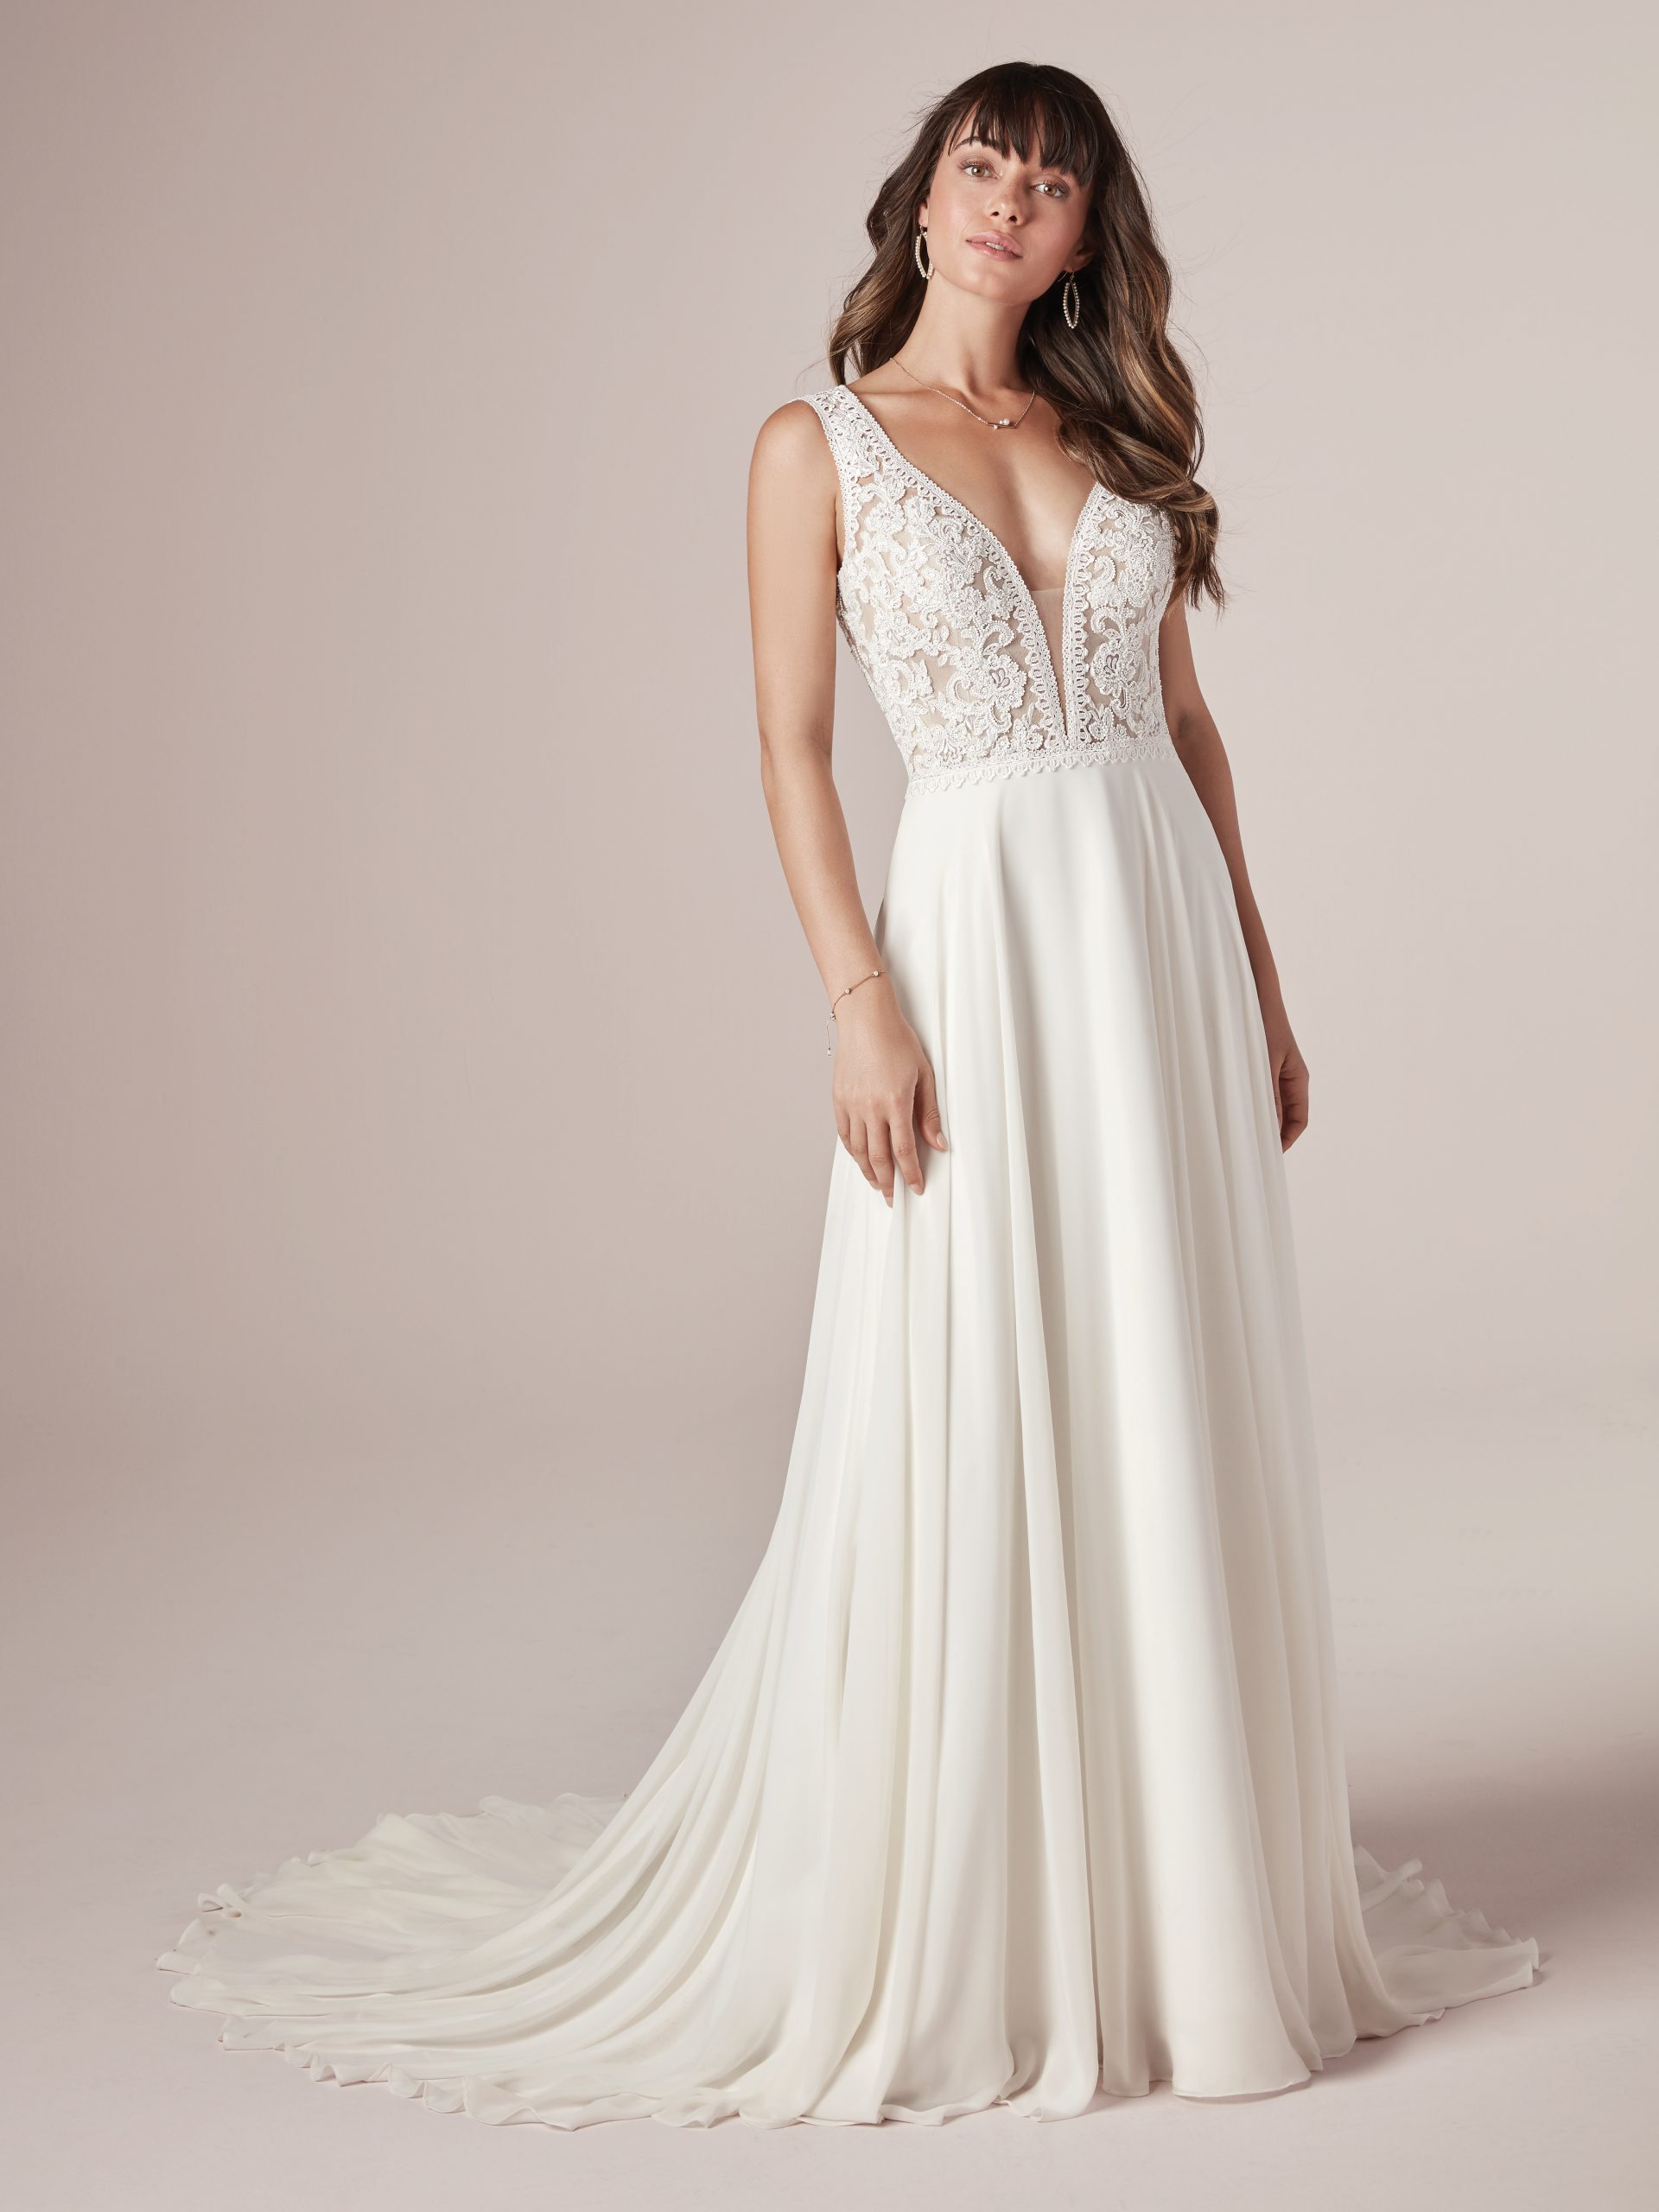 Model Wearing Country Wedding Gown with Keyhole Back Called Gabriella by Rebecca Ingram